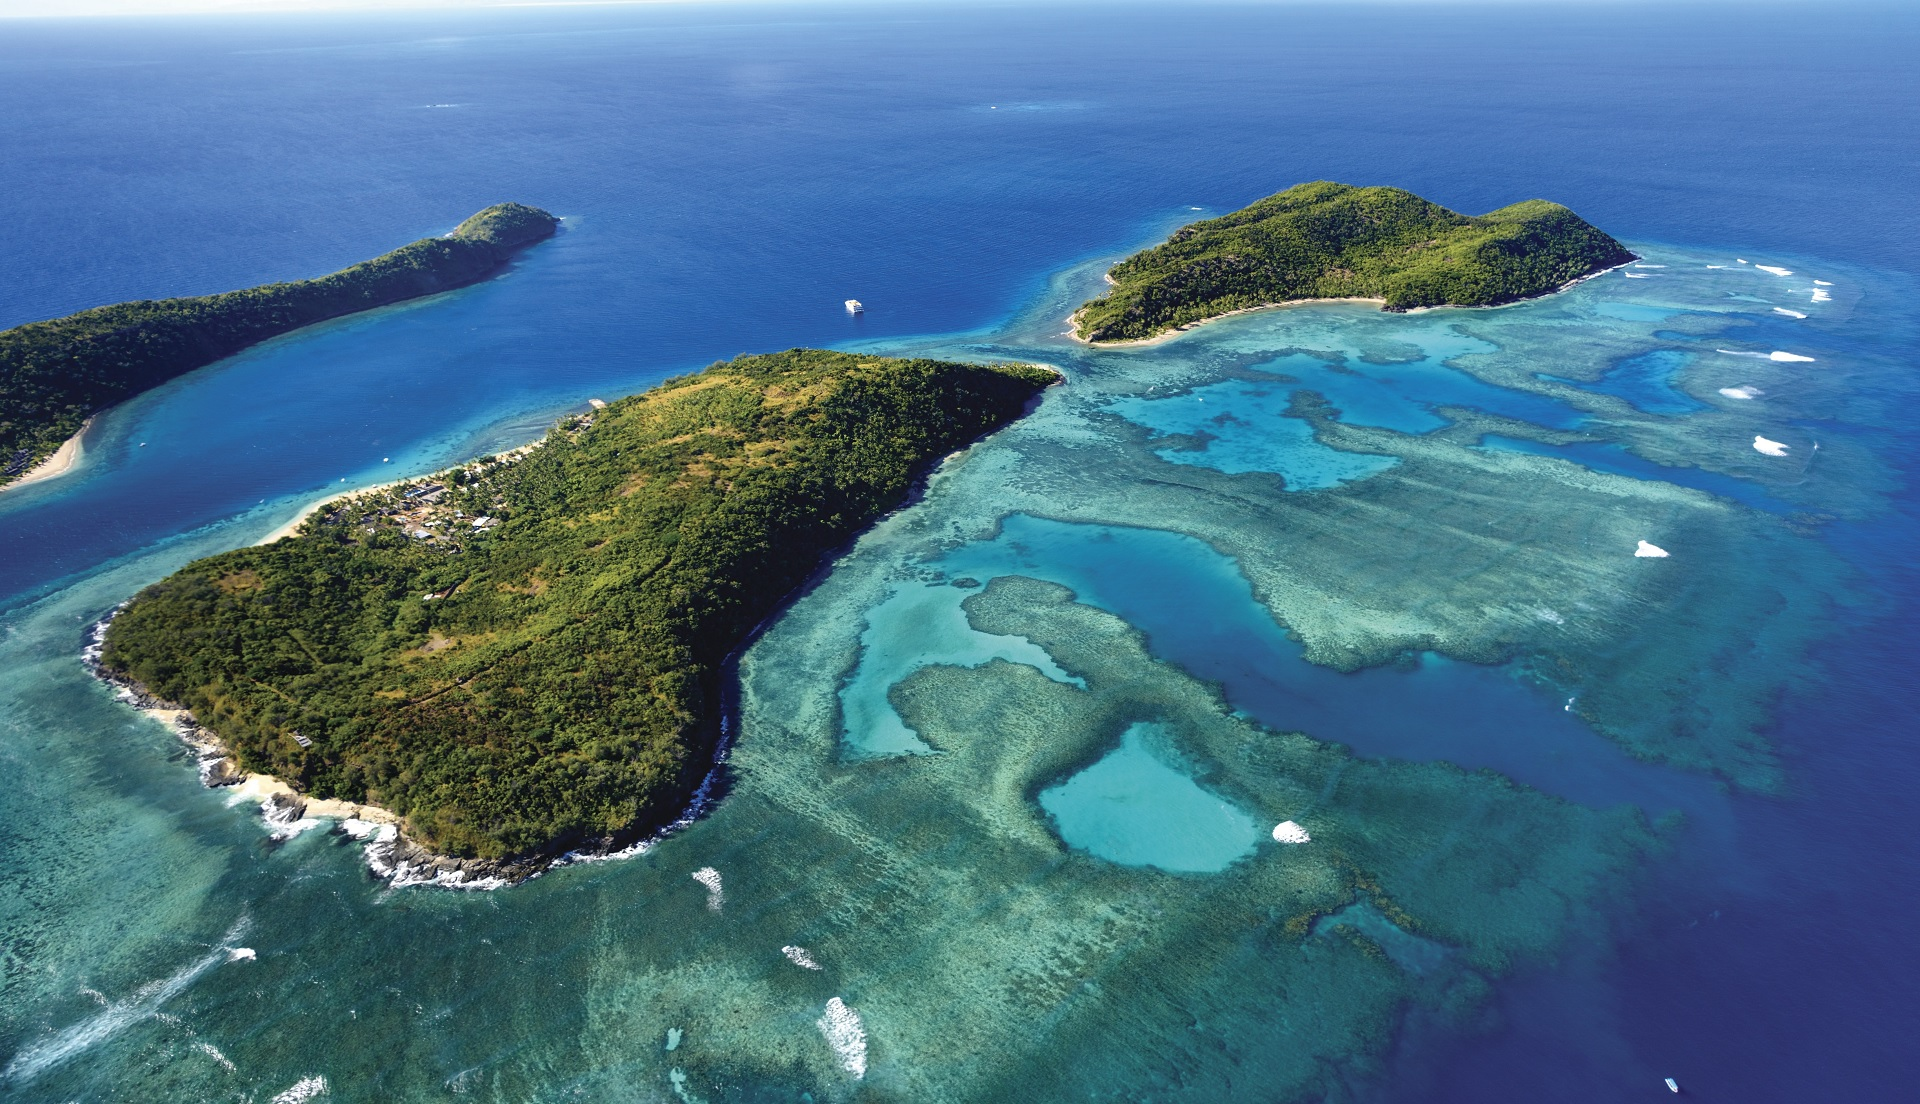 Fiji Consulate General & Trade Commission – This website